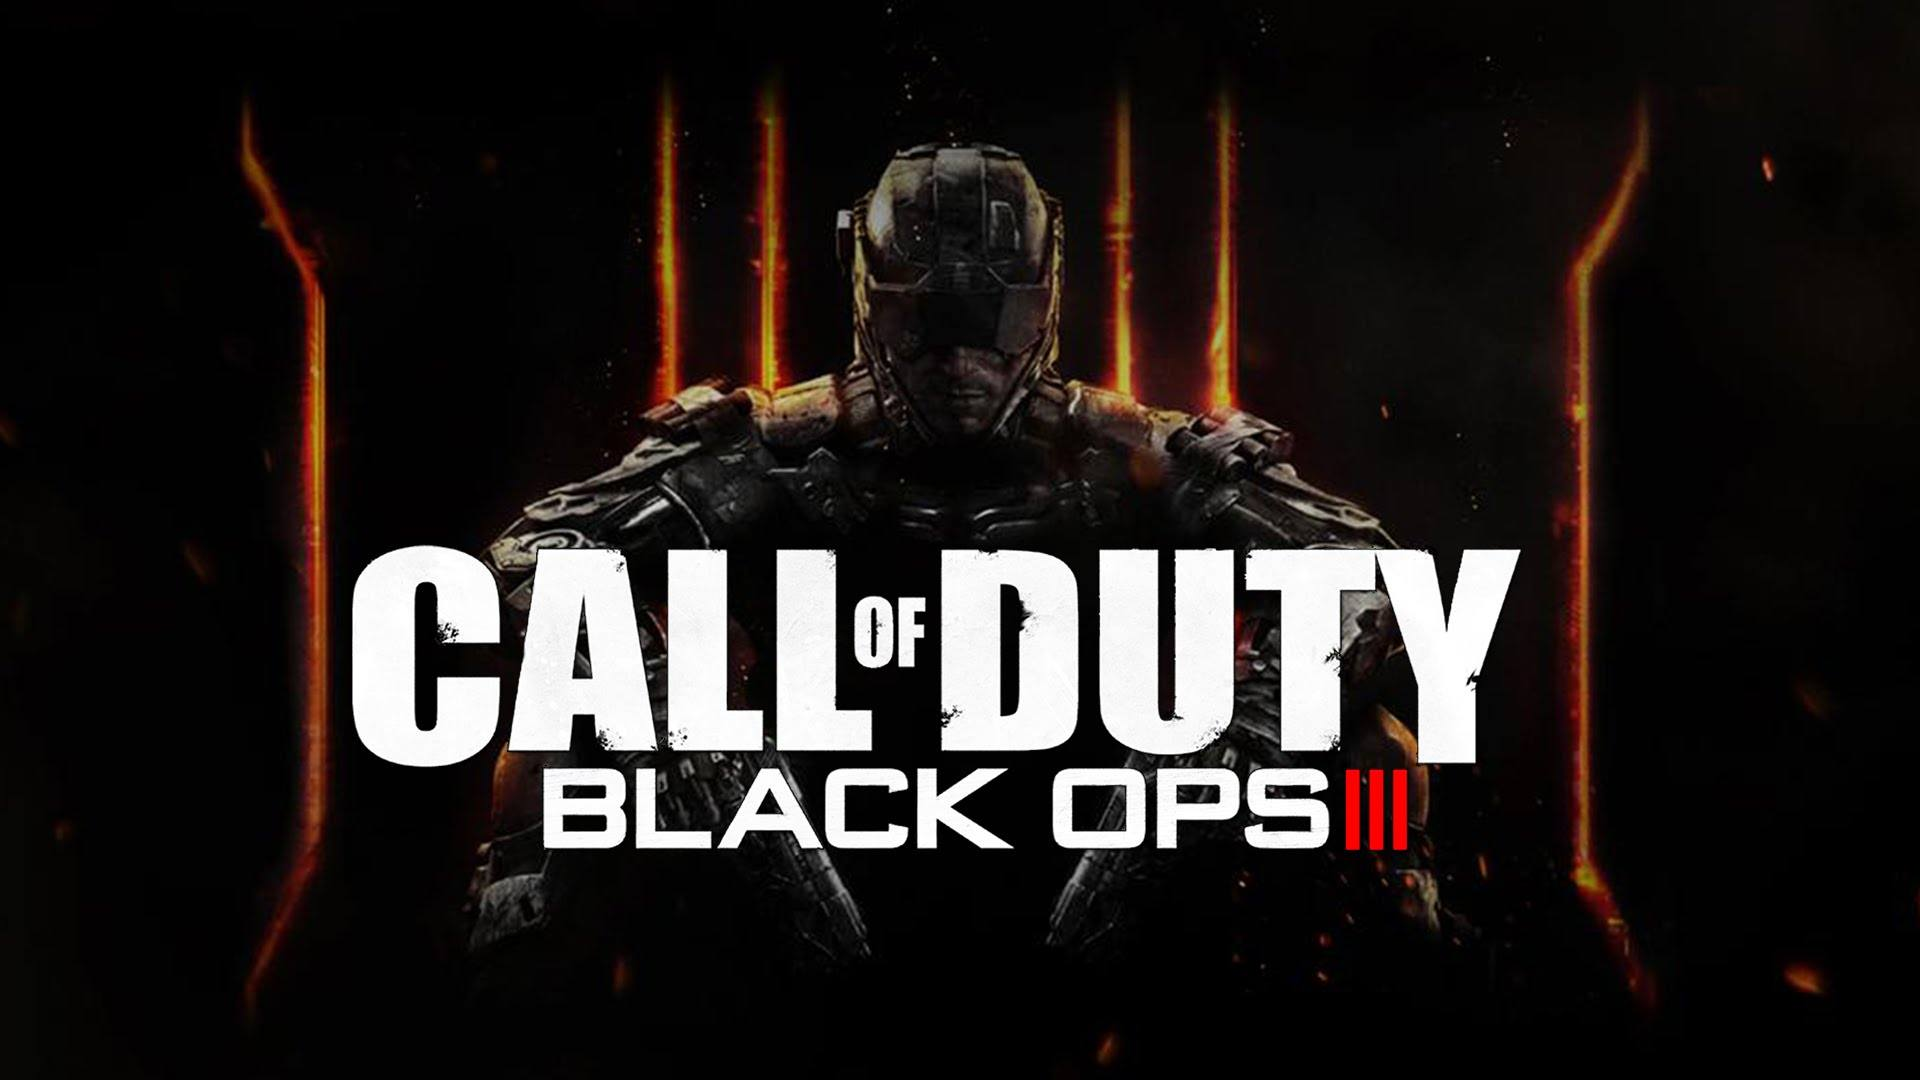 Download Call of Duty Black Ops 3 – Digital Deluxe Edition [v 88.0.0.0.0 + DLCs] Repack xatab